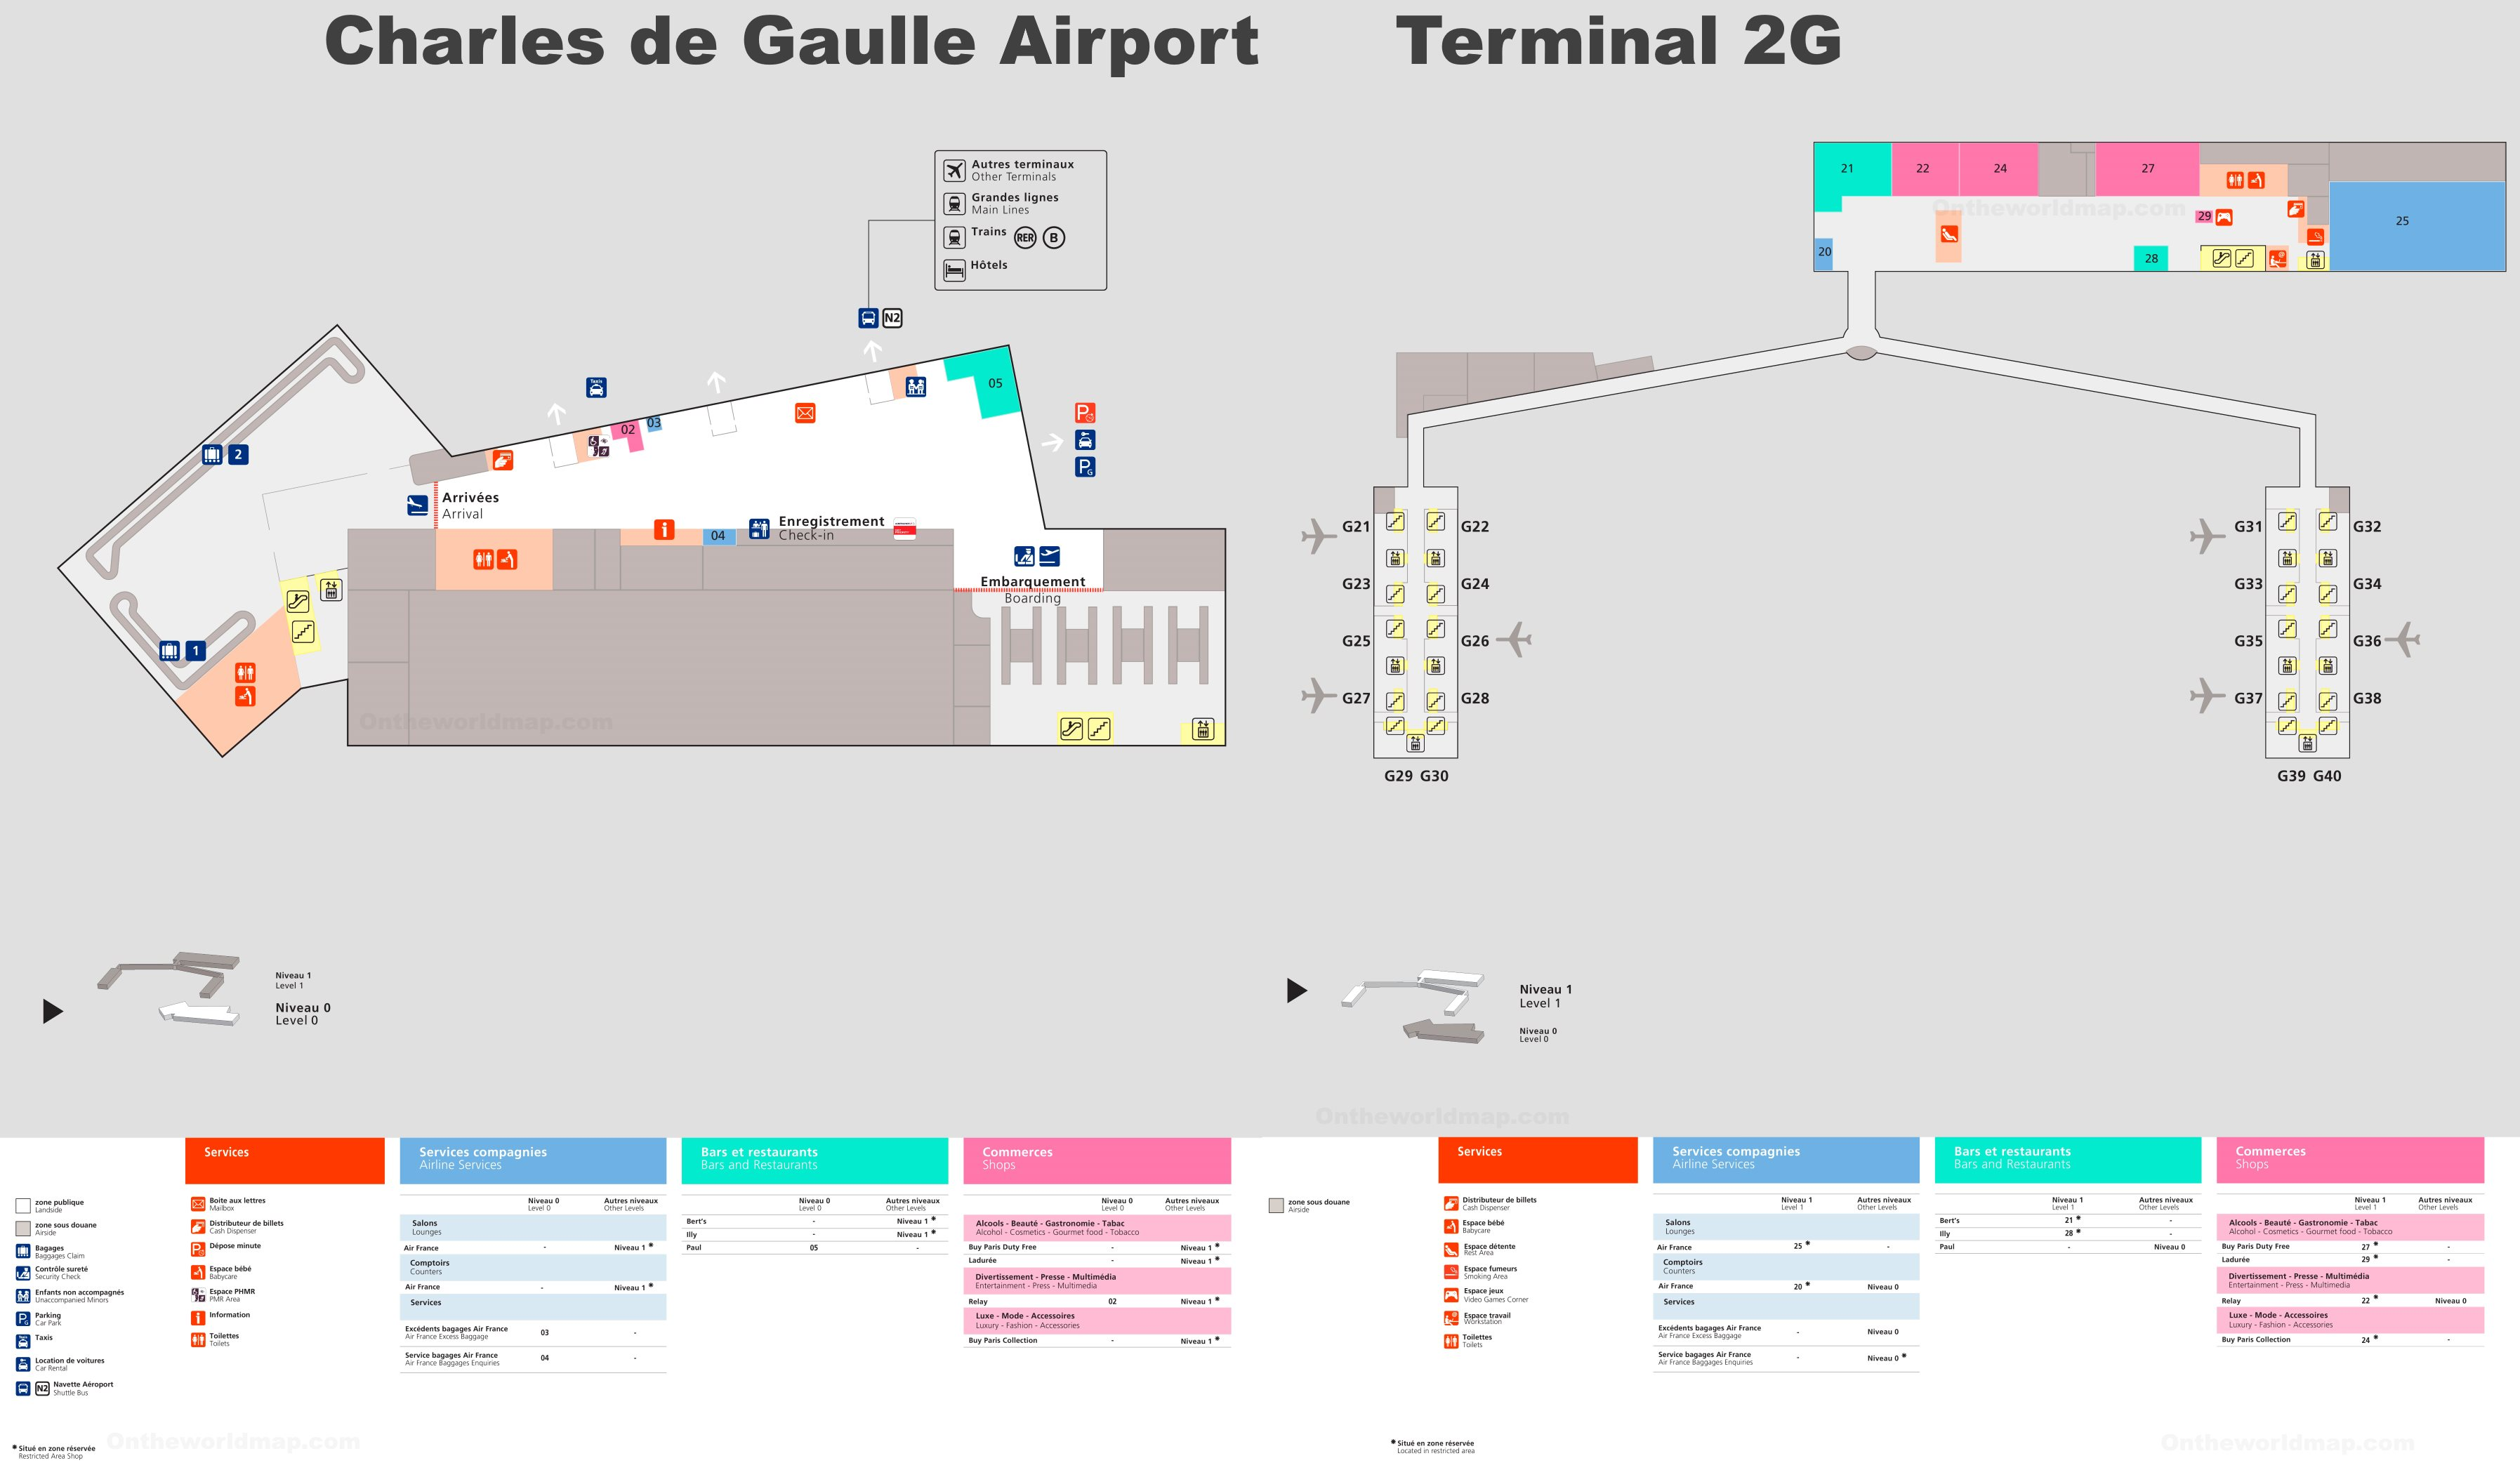 Charles de Gaulle Airport Terminal 2G Map on